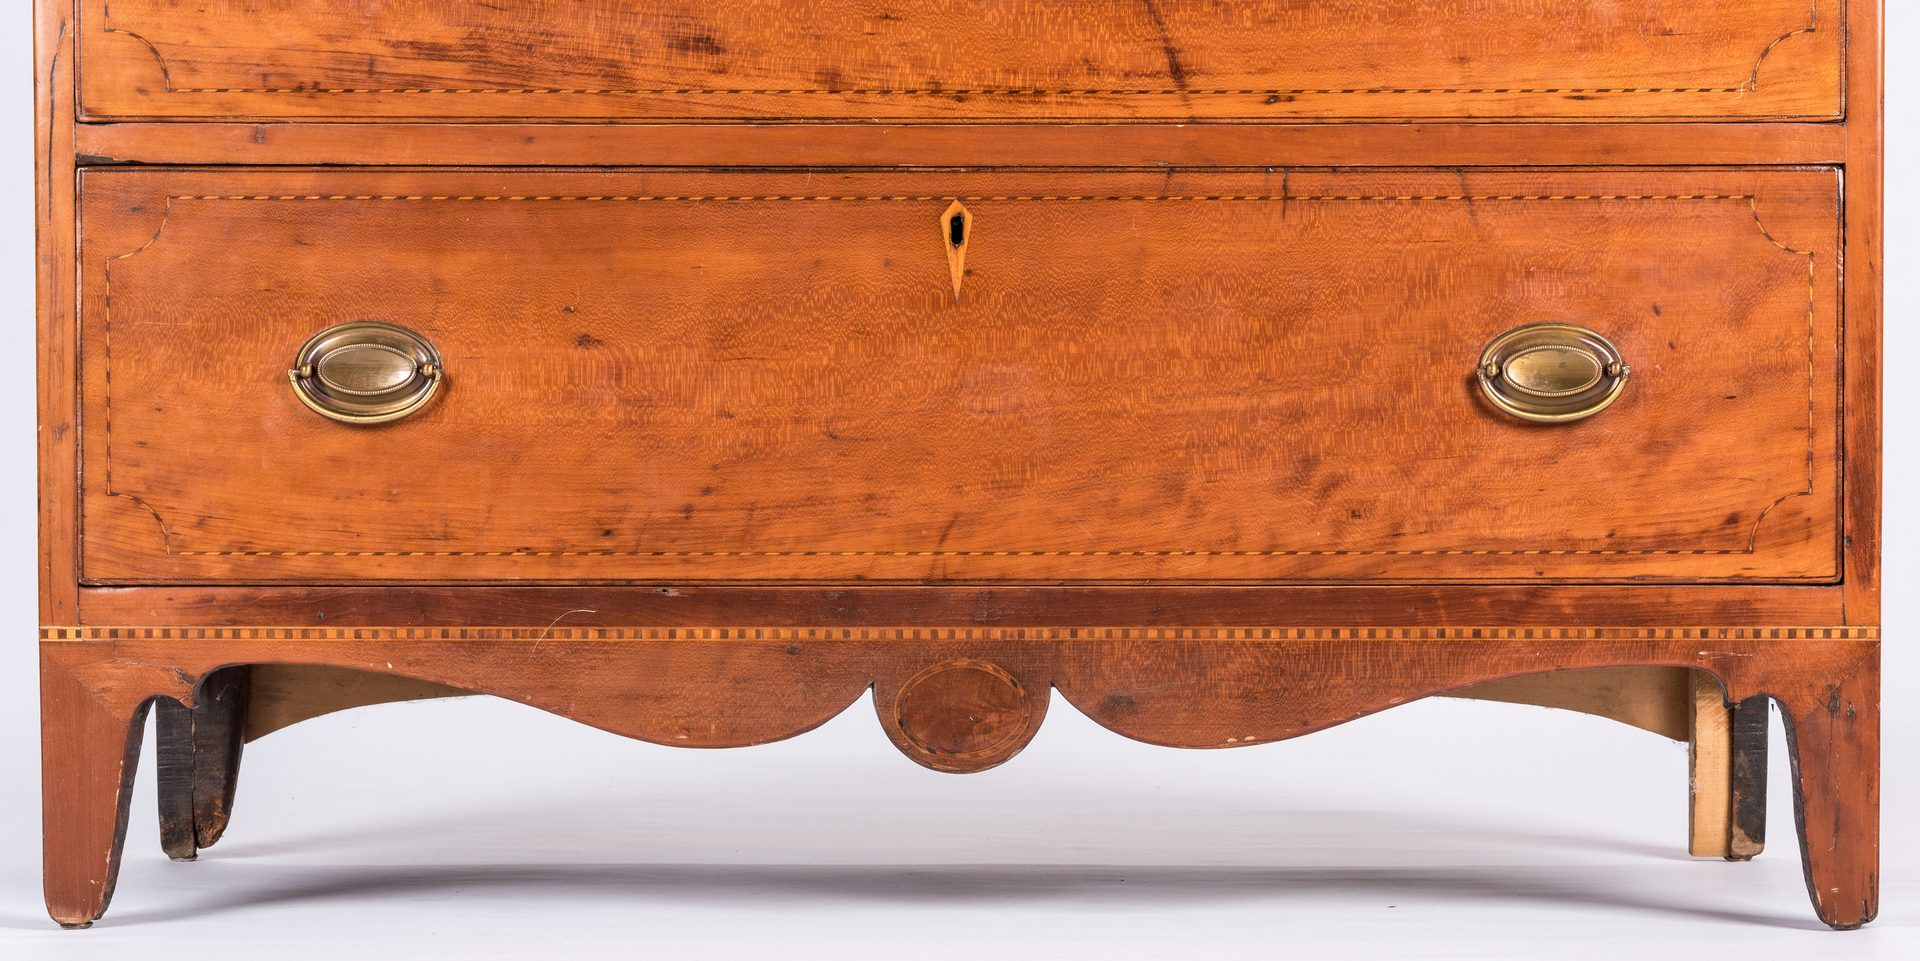 Lot 168: KY Inlaid Federal Chest, attr. Porter Clay